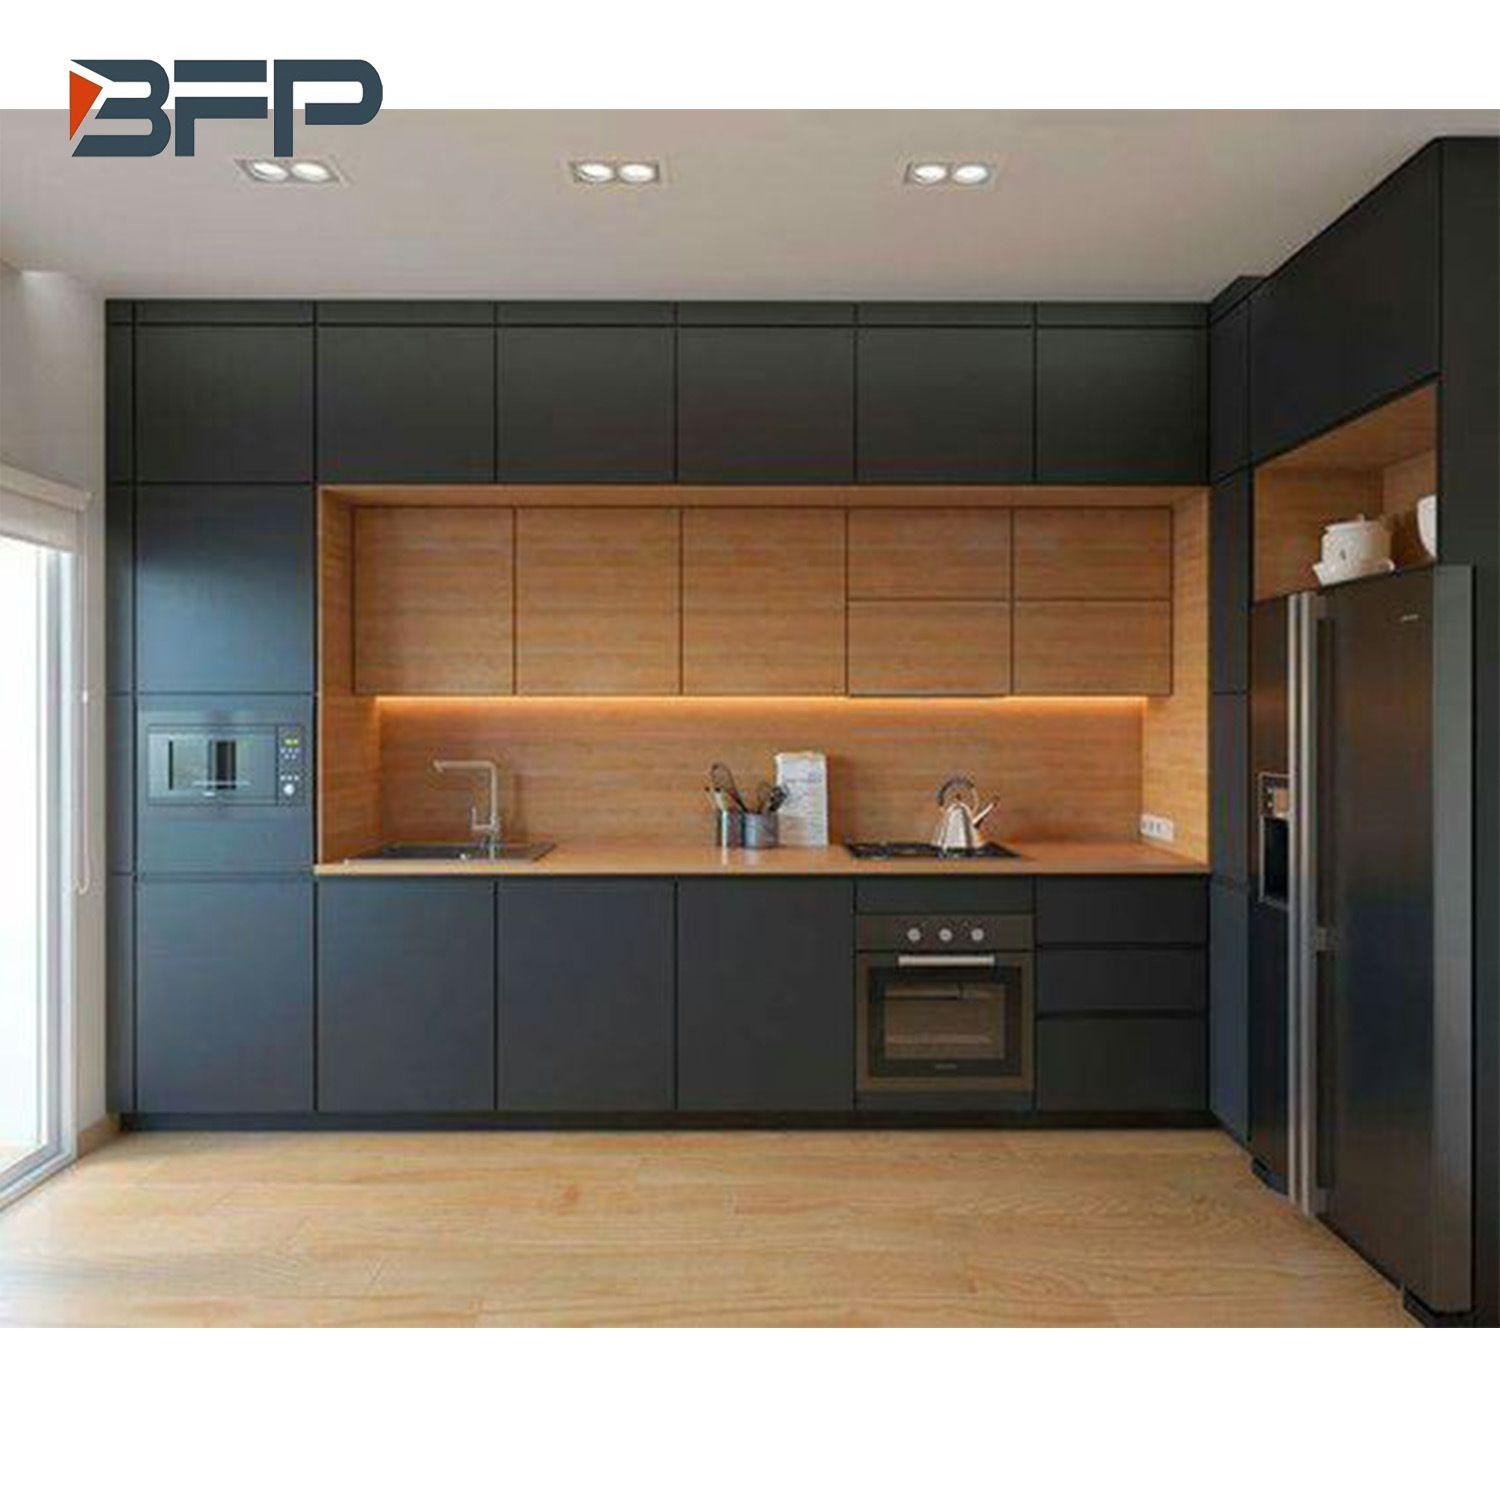 Kitchen Cabinets Modern Style Interior Design L Shape 160 Color Mix Free Handle Cabinet Bmk 83 Small Modern Kitchens Modern Kitchen Design Kitchen Room Design